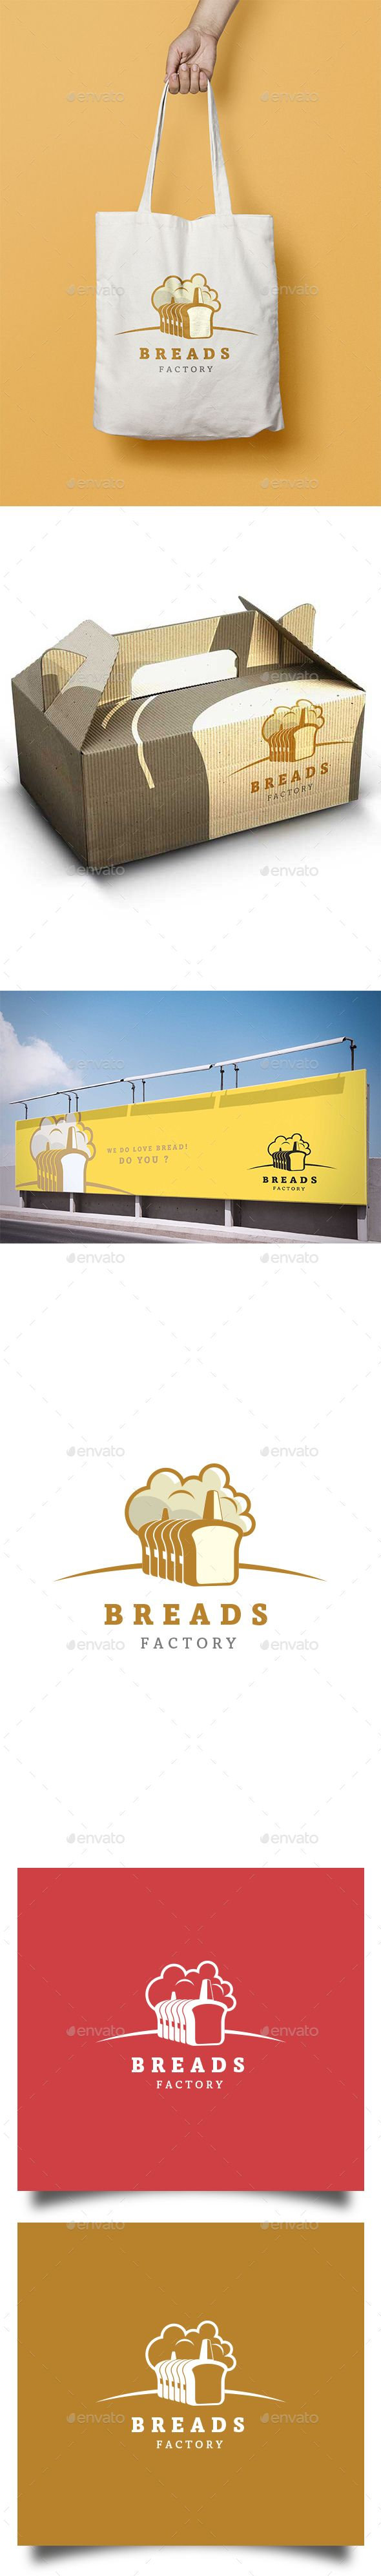 Bread Factory by pixellord Bread Factory logo design is applicable for food industry especially bread related business. It is simple yet elegant and vintage